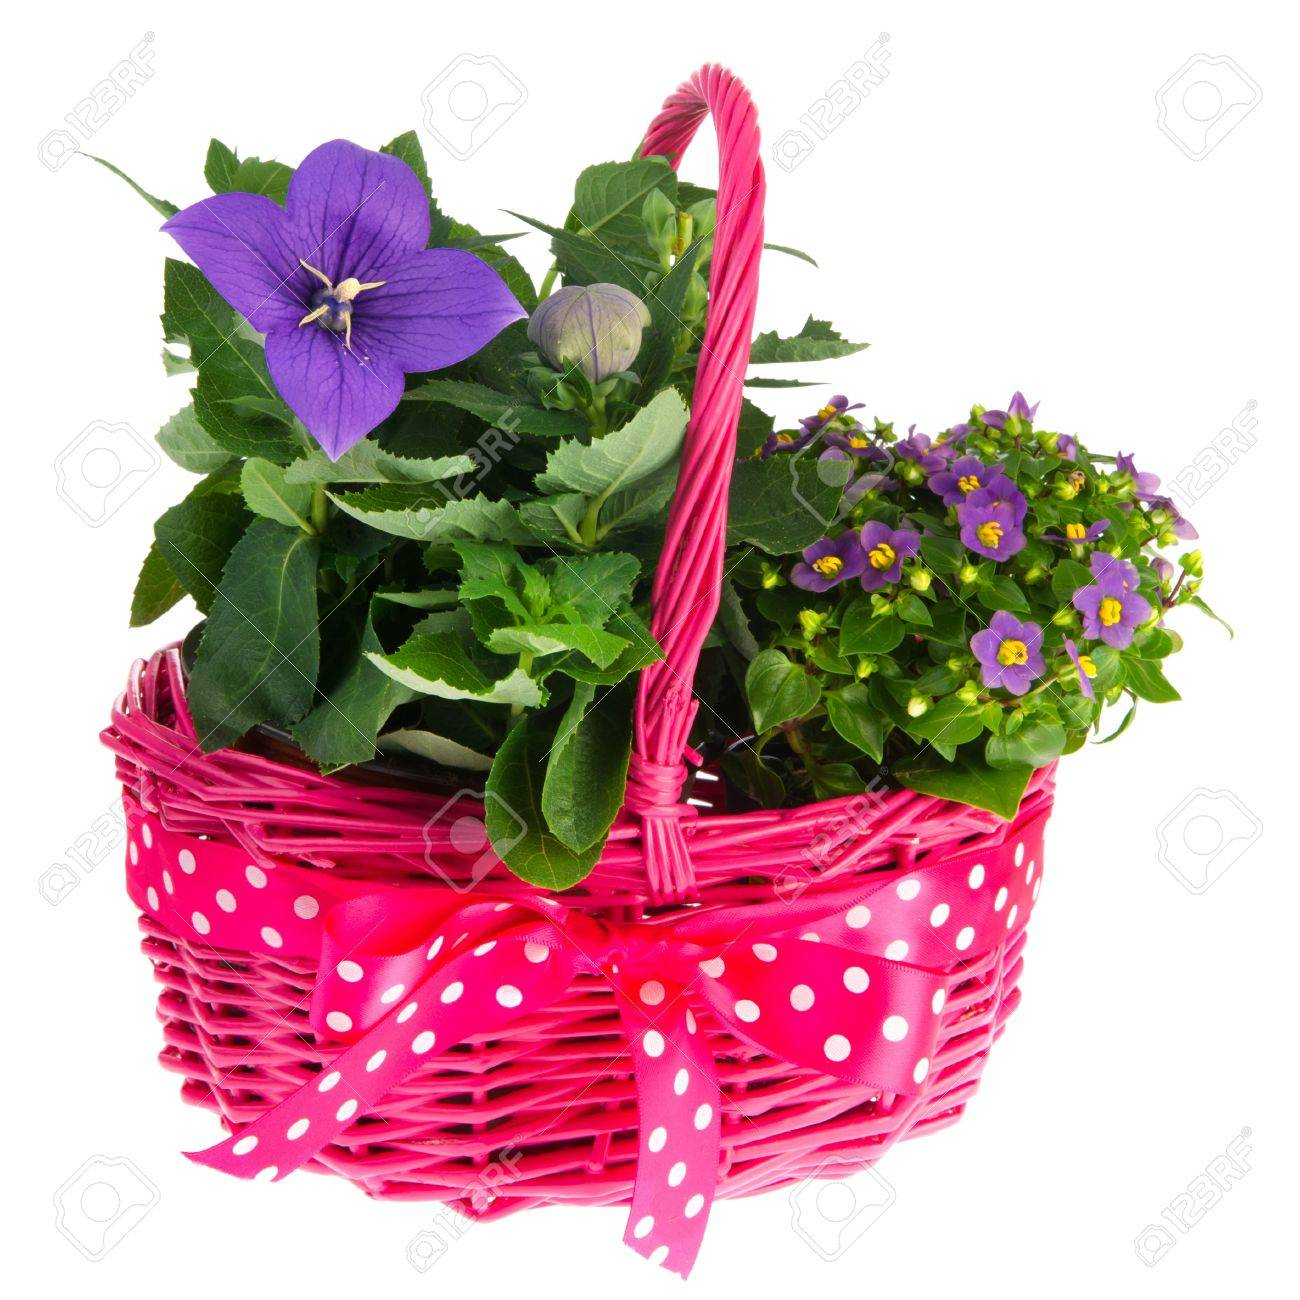 Pink Basket With Ribbon And Plants With Blue Flowers Stock Photo